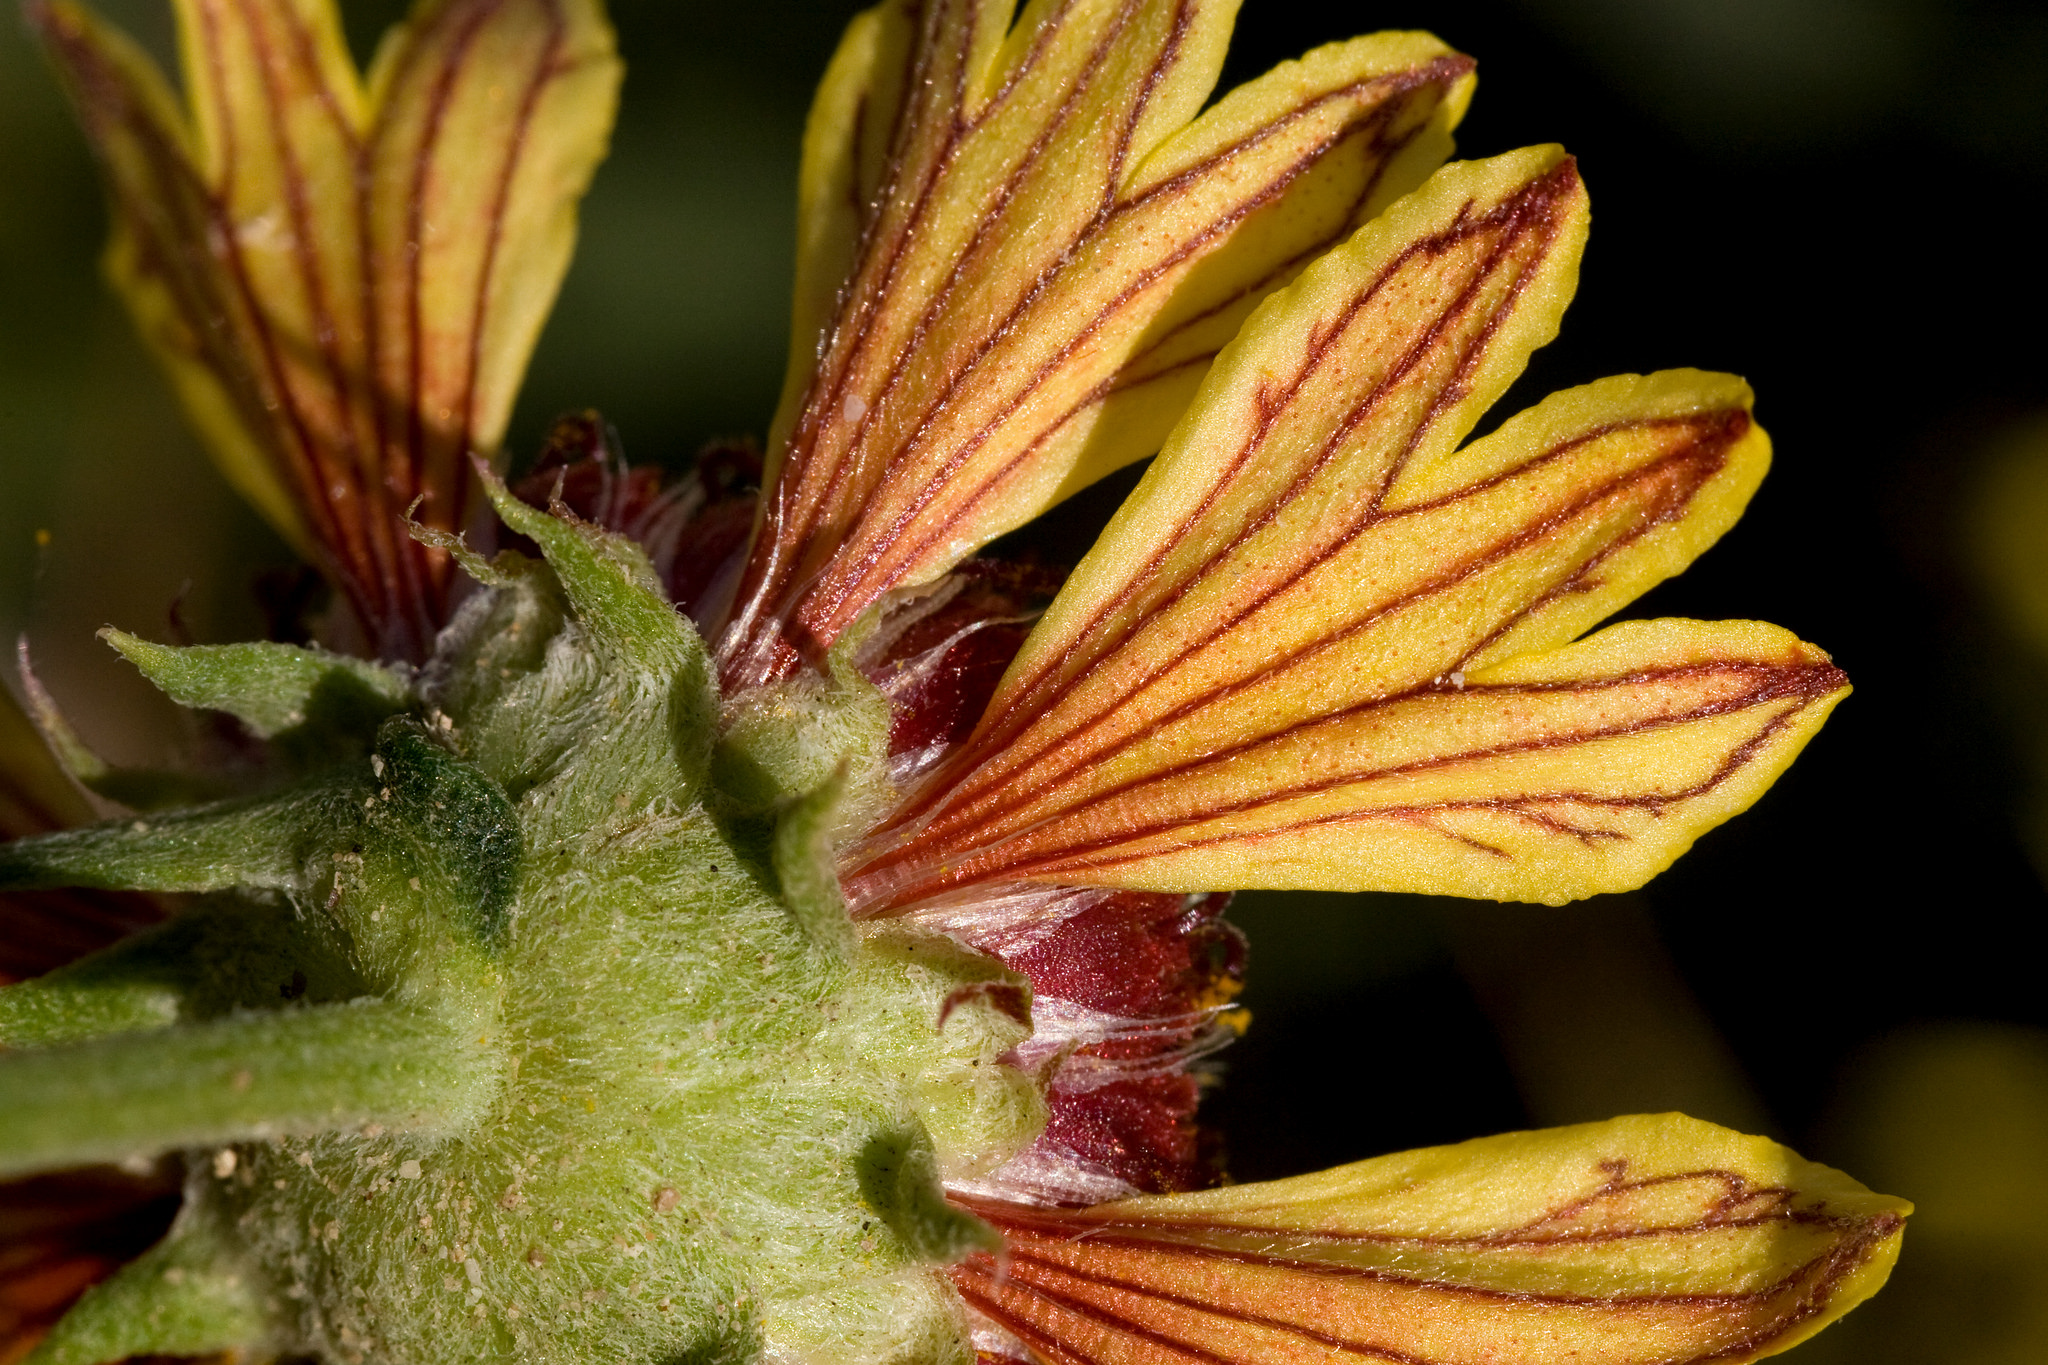 One example of a petal coloration: yellow tridentate petals with red veins